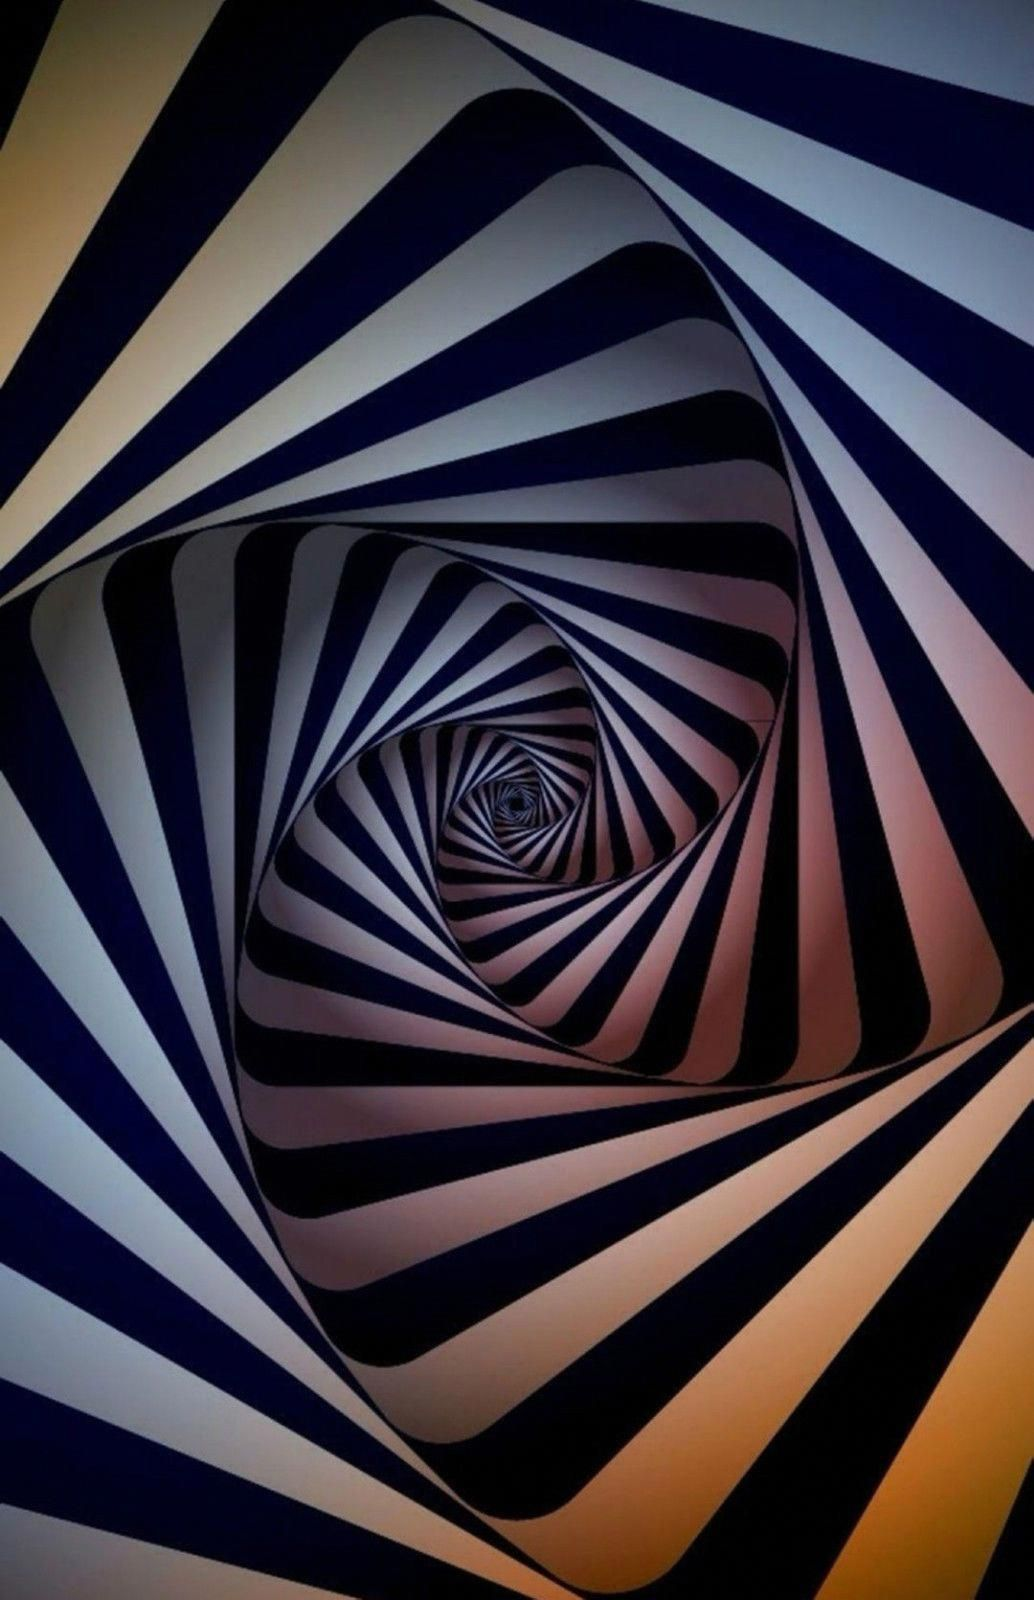 Framed Print Colourful Spiral Hole Poster Picture Optical Illusion Art 3dprinterlessons Optical Illusions Art 3d Wallpaper Iphone Iphone 6 Plus Wallpaper